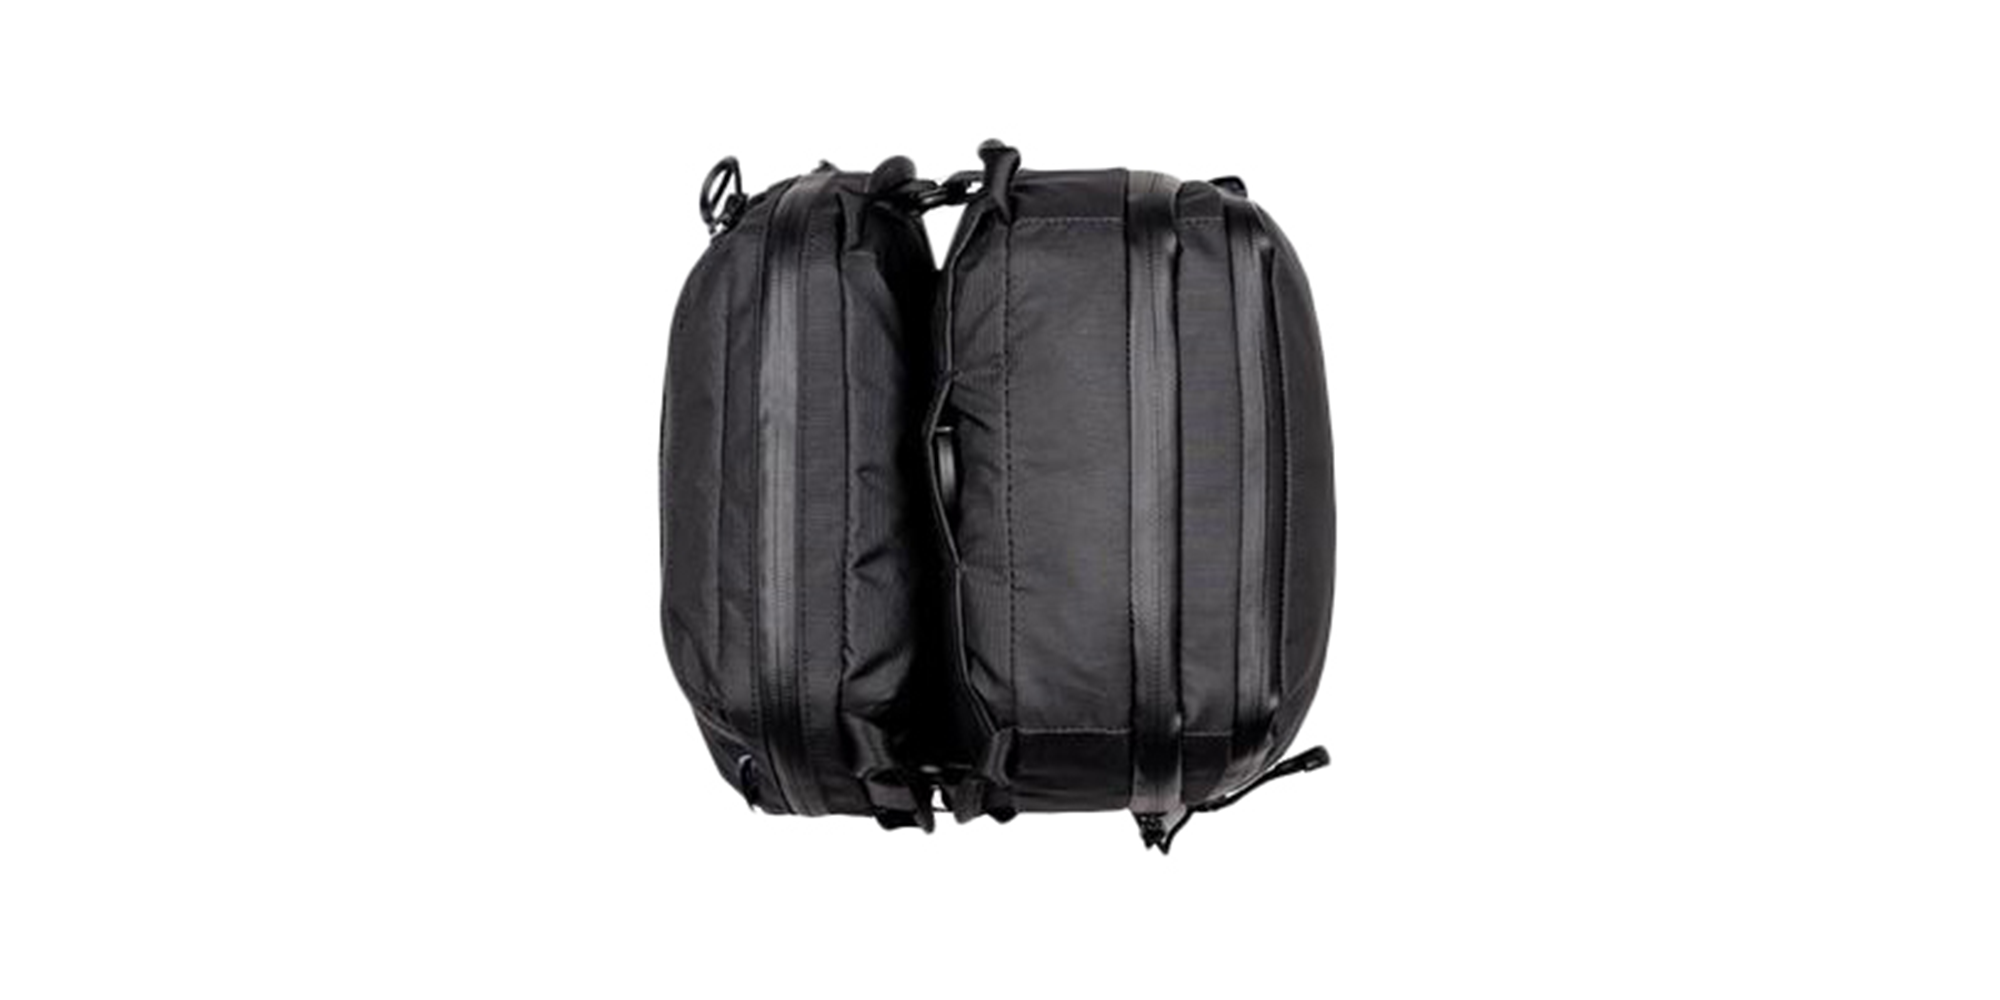 Two Wandrd Toiletry Bags Large and Medium joined together